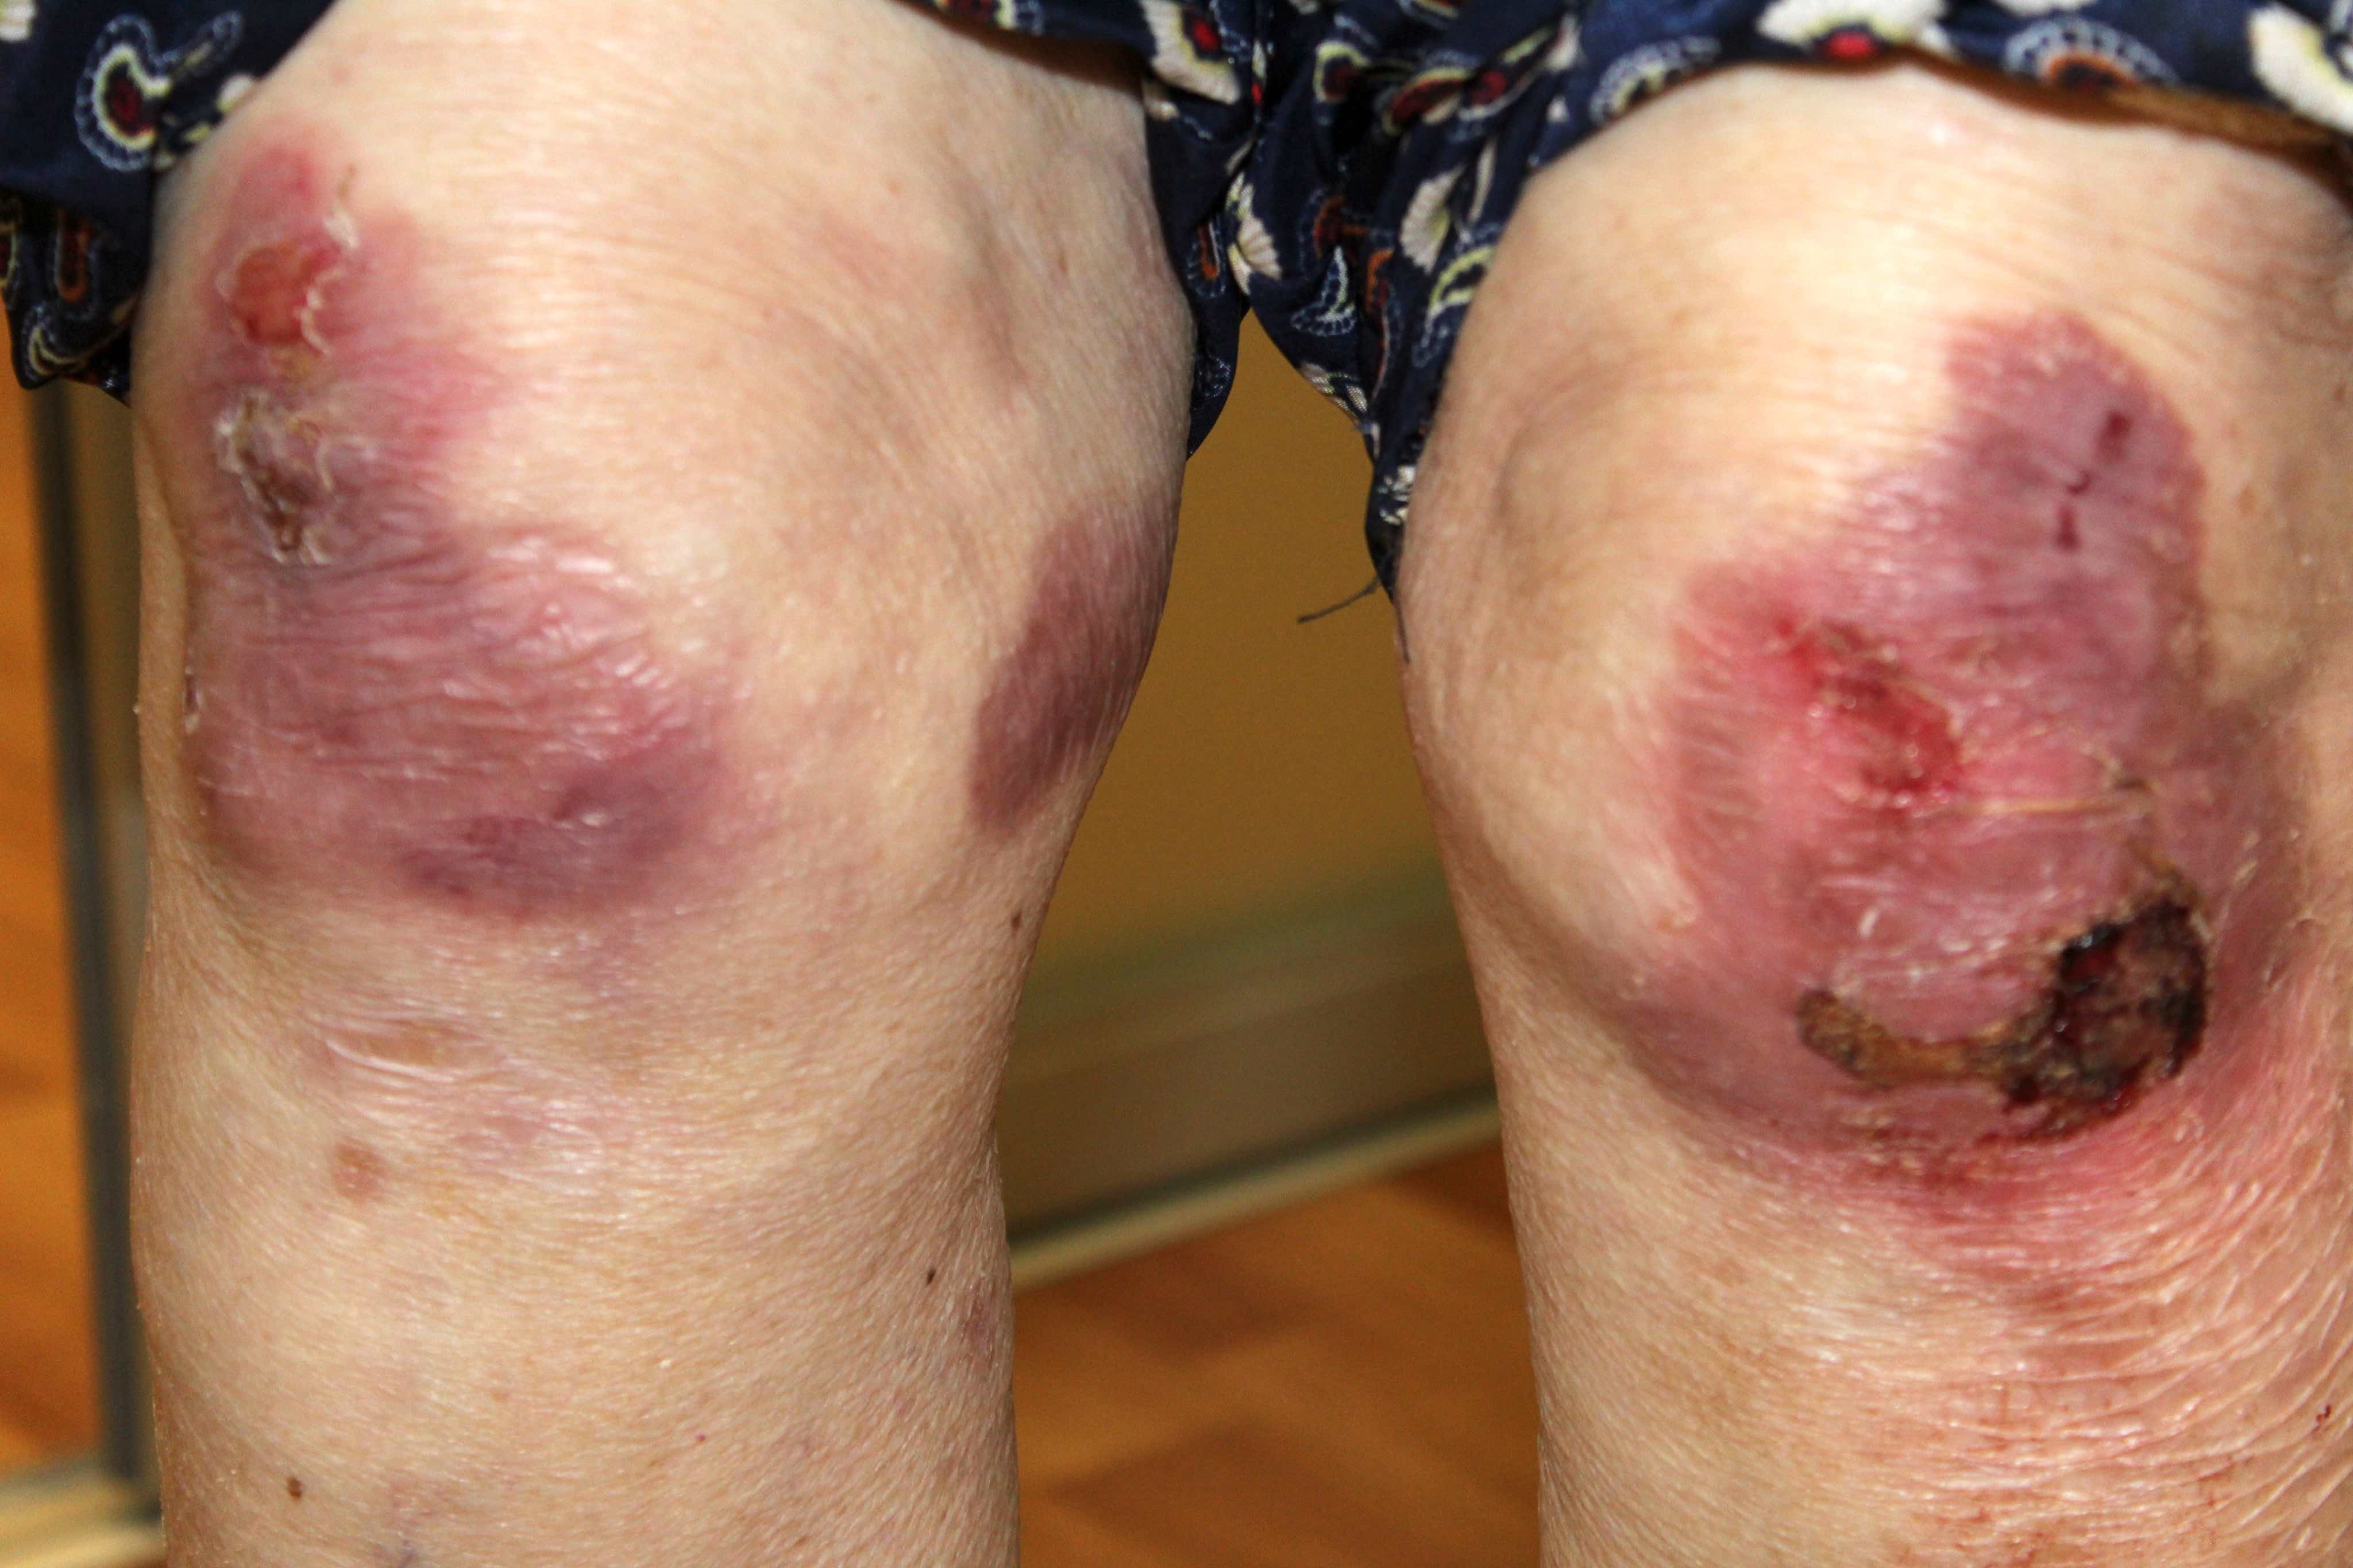 Erosions on the knees